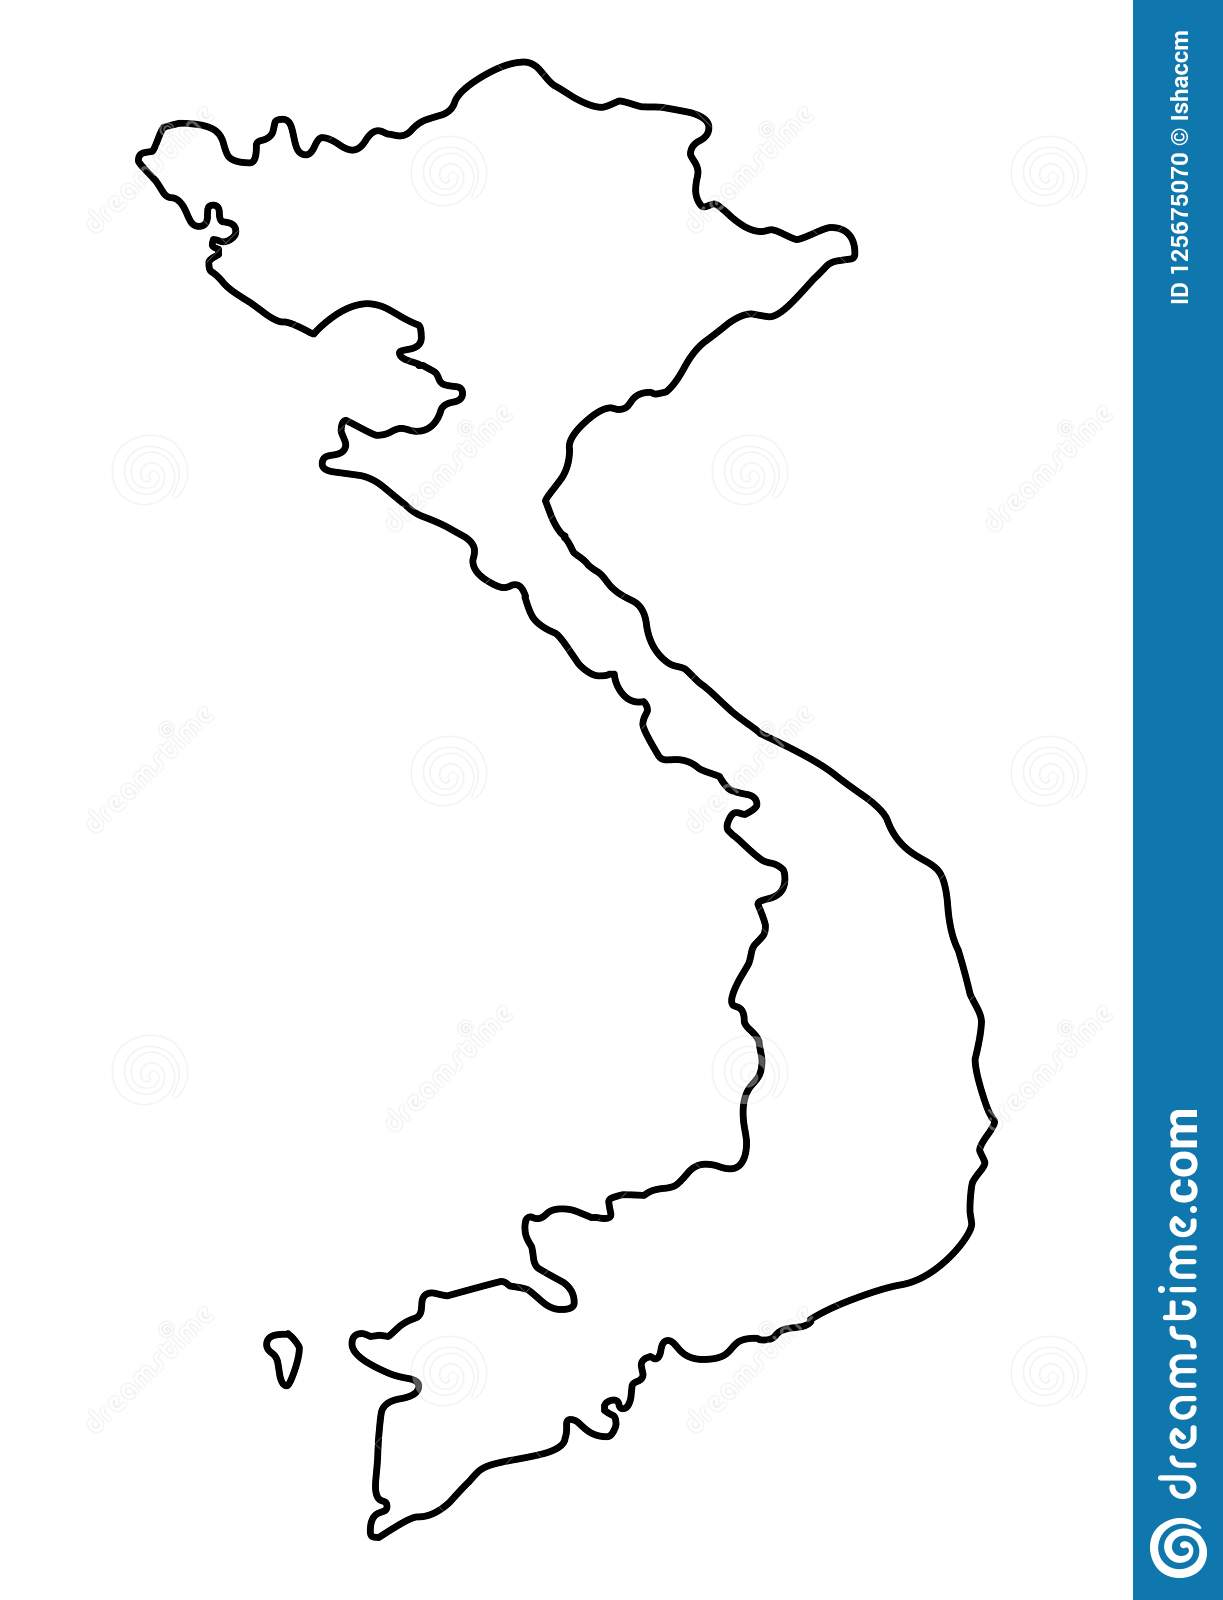 Vietnam Map Outline Vector Illustration Stock Vector - Illustration ...